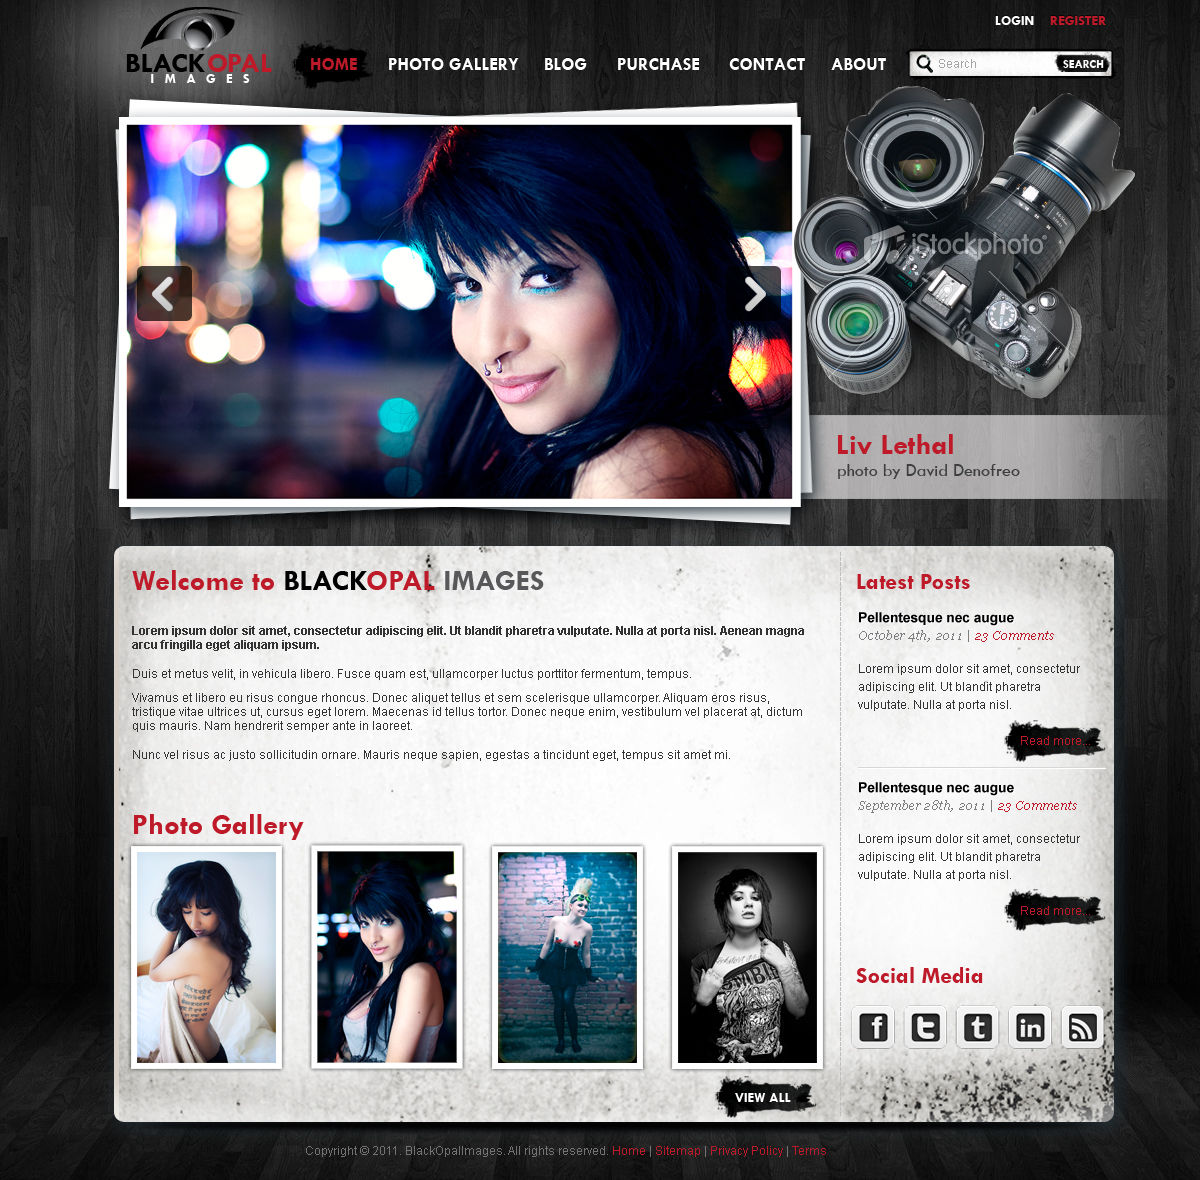 Web Page Design by Vladimir Koncos - Entry No. 28 in the Web Page Design Contest New Web Page Design for Black Opal Images.